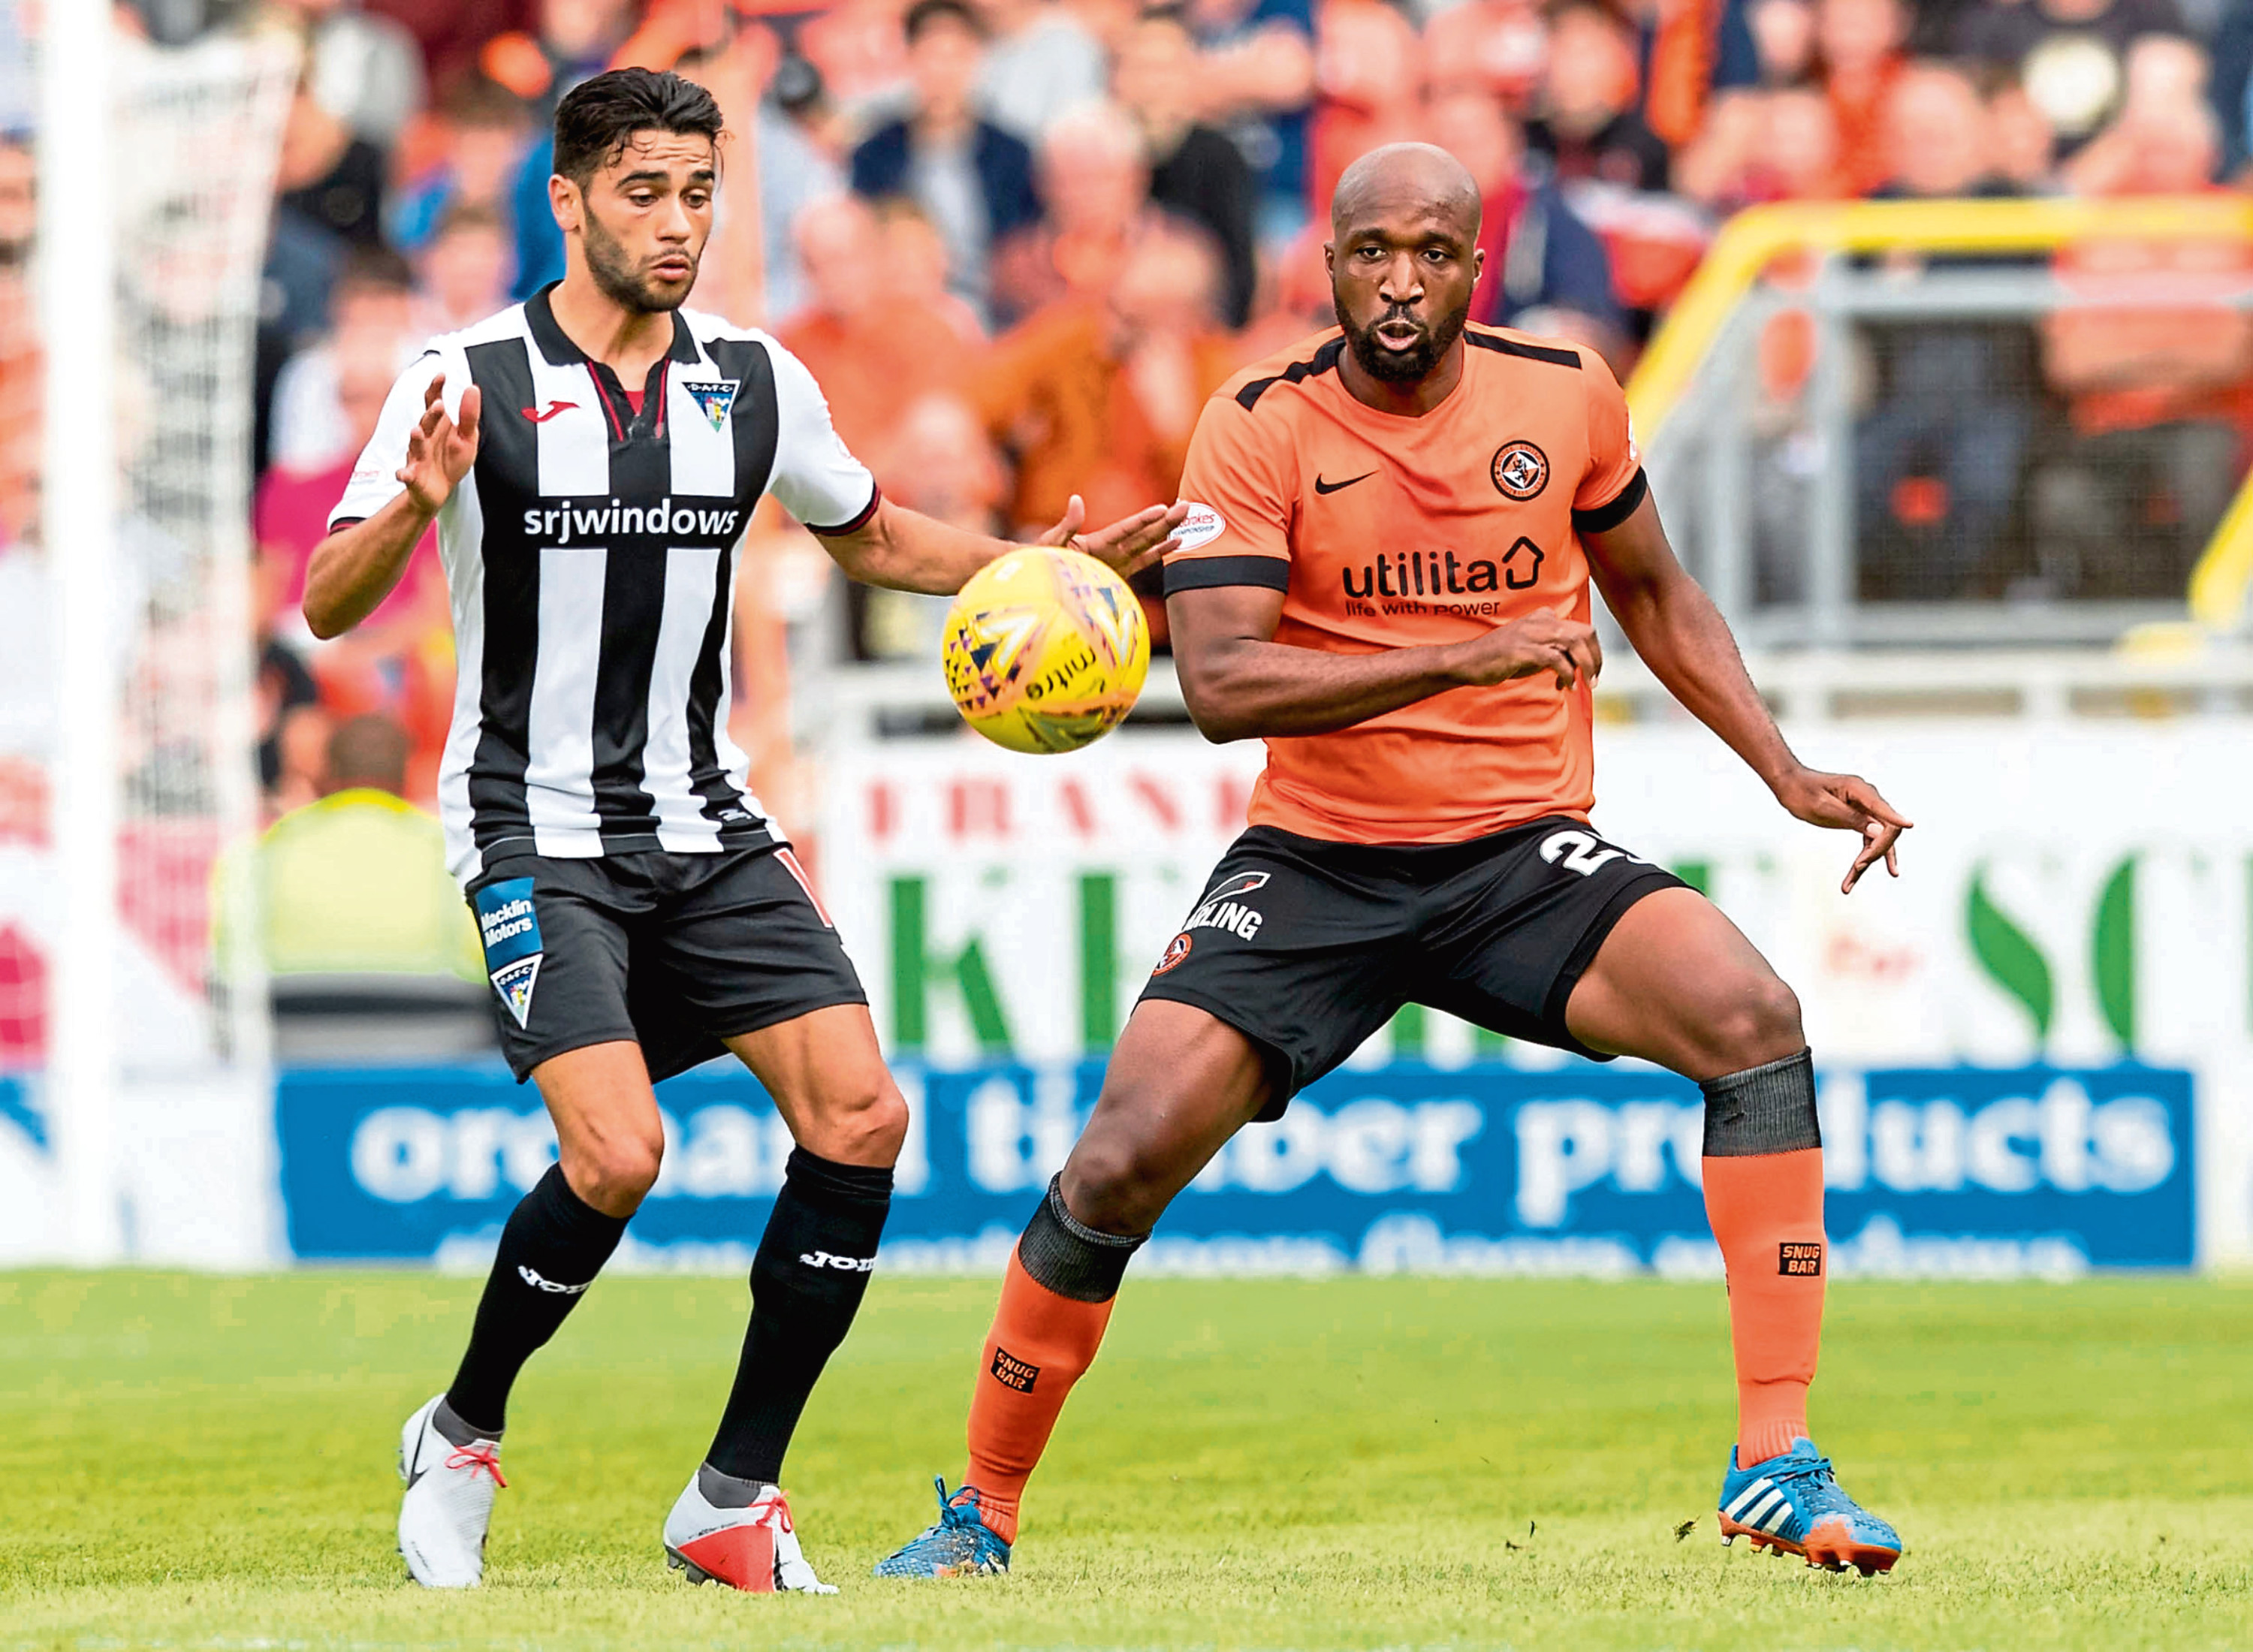 Dundee United boss Robbie Neilson has been delighted with the form of William Edjenguele (right) after the defender was restored to the side